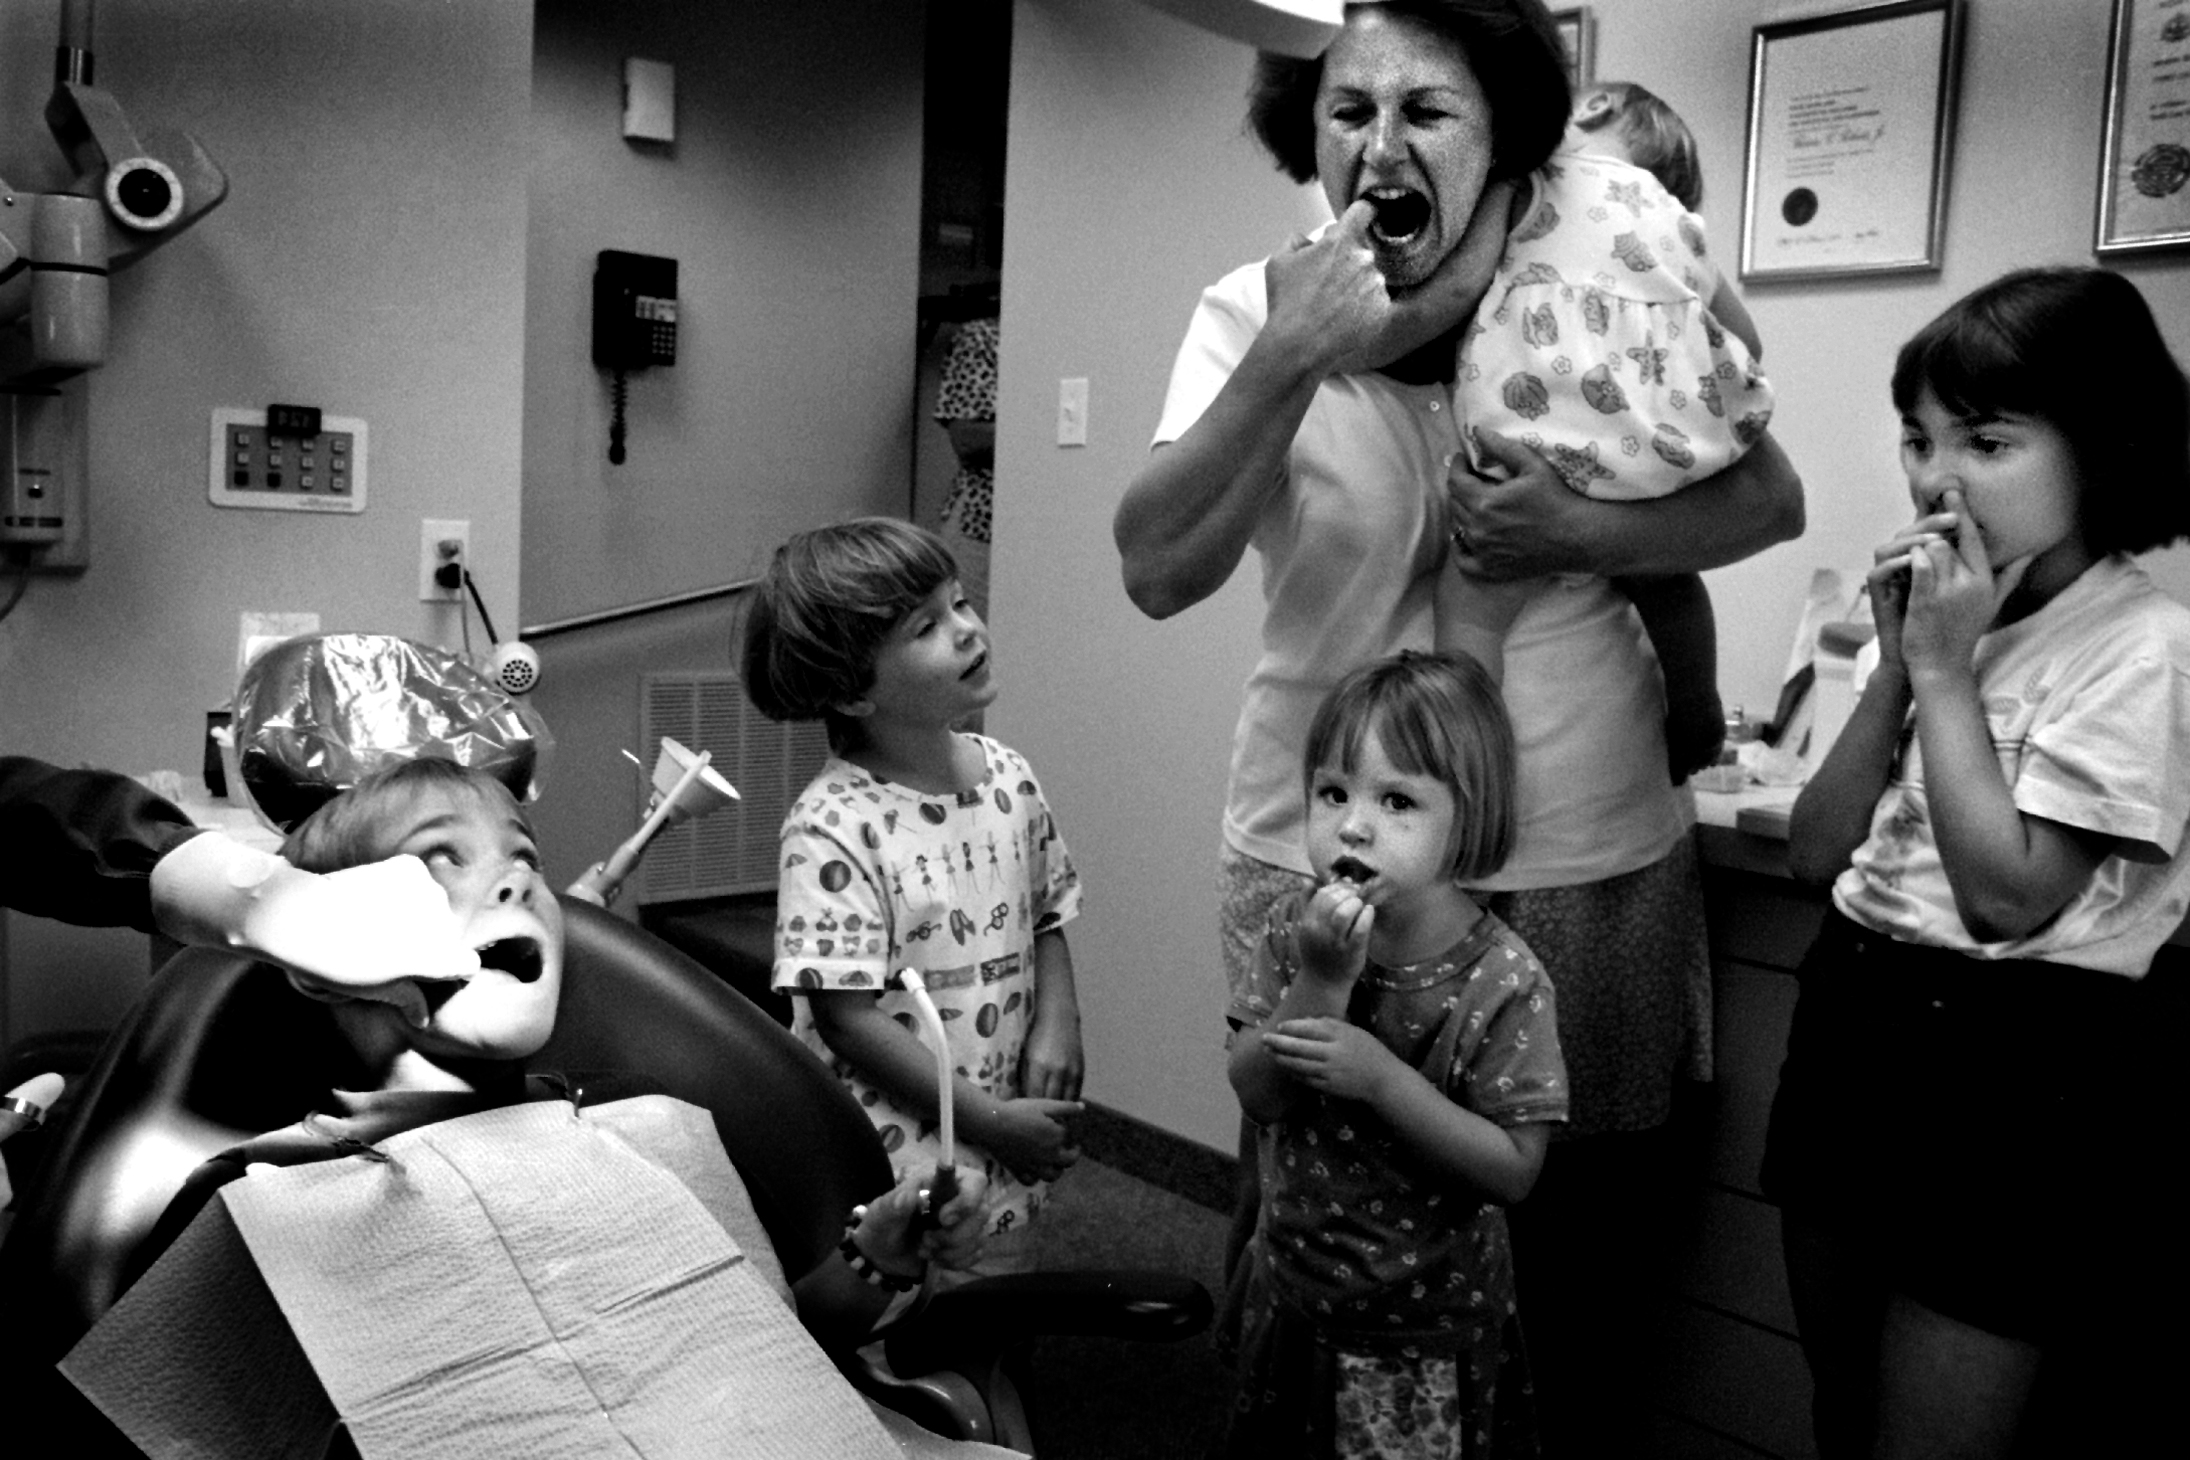 It is those little moments that I cherish, like a trip to the dentist with these kids from Chernobyl visiting the U.S. with a suburban Virginia family.© Nancy Andrews/The Washington Post